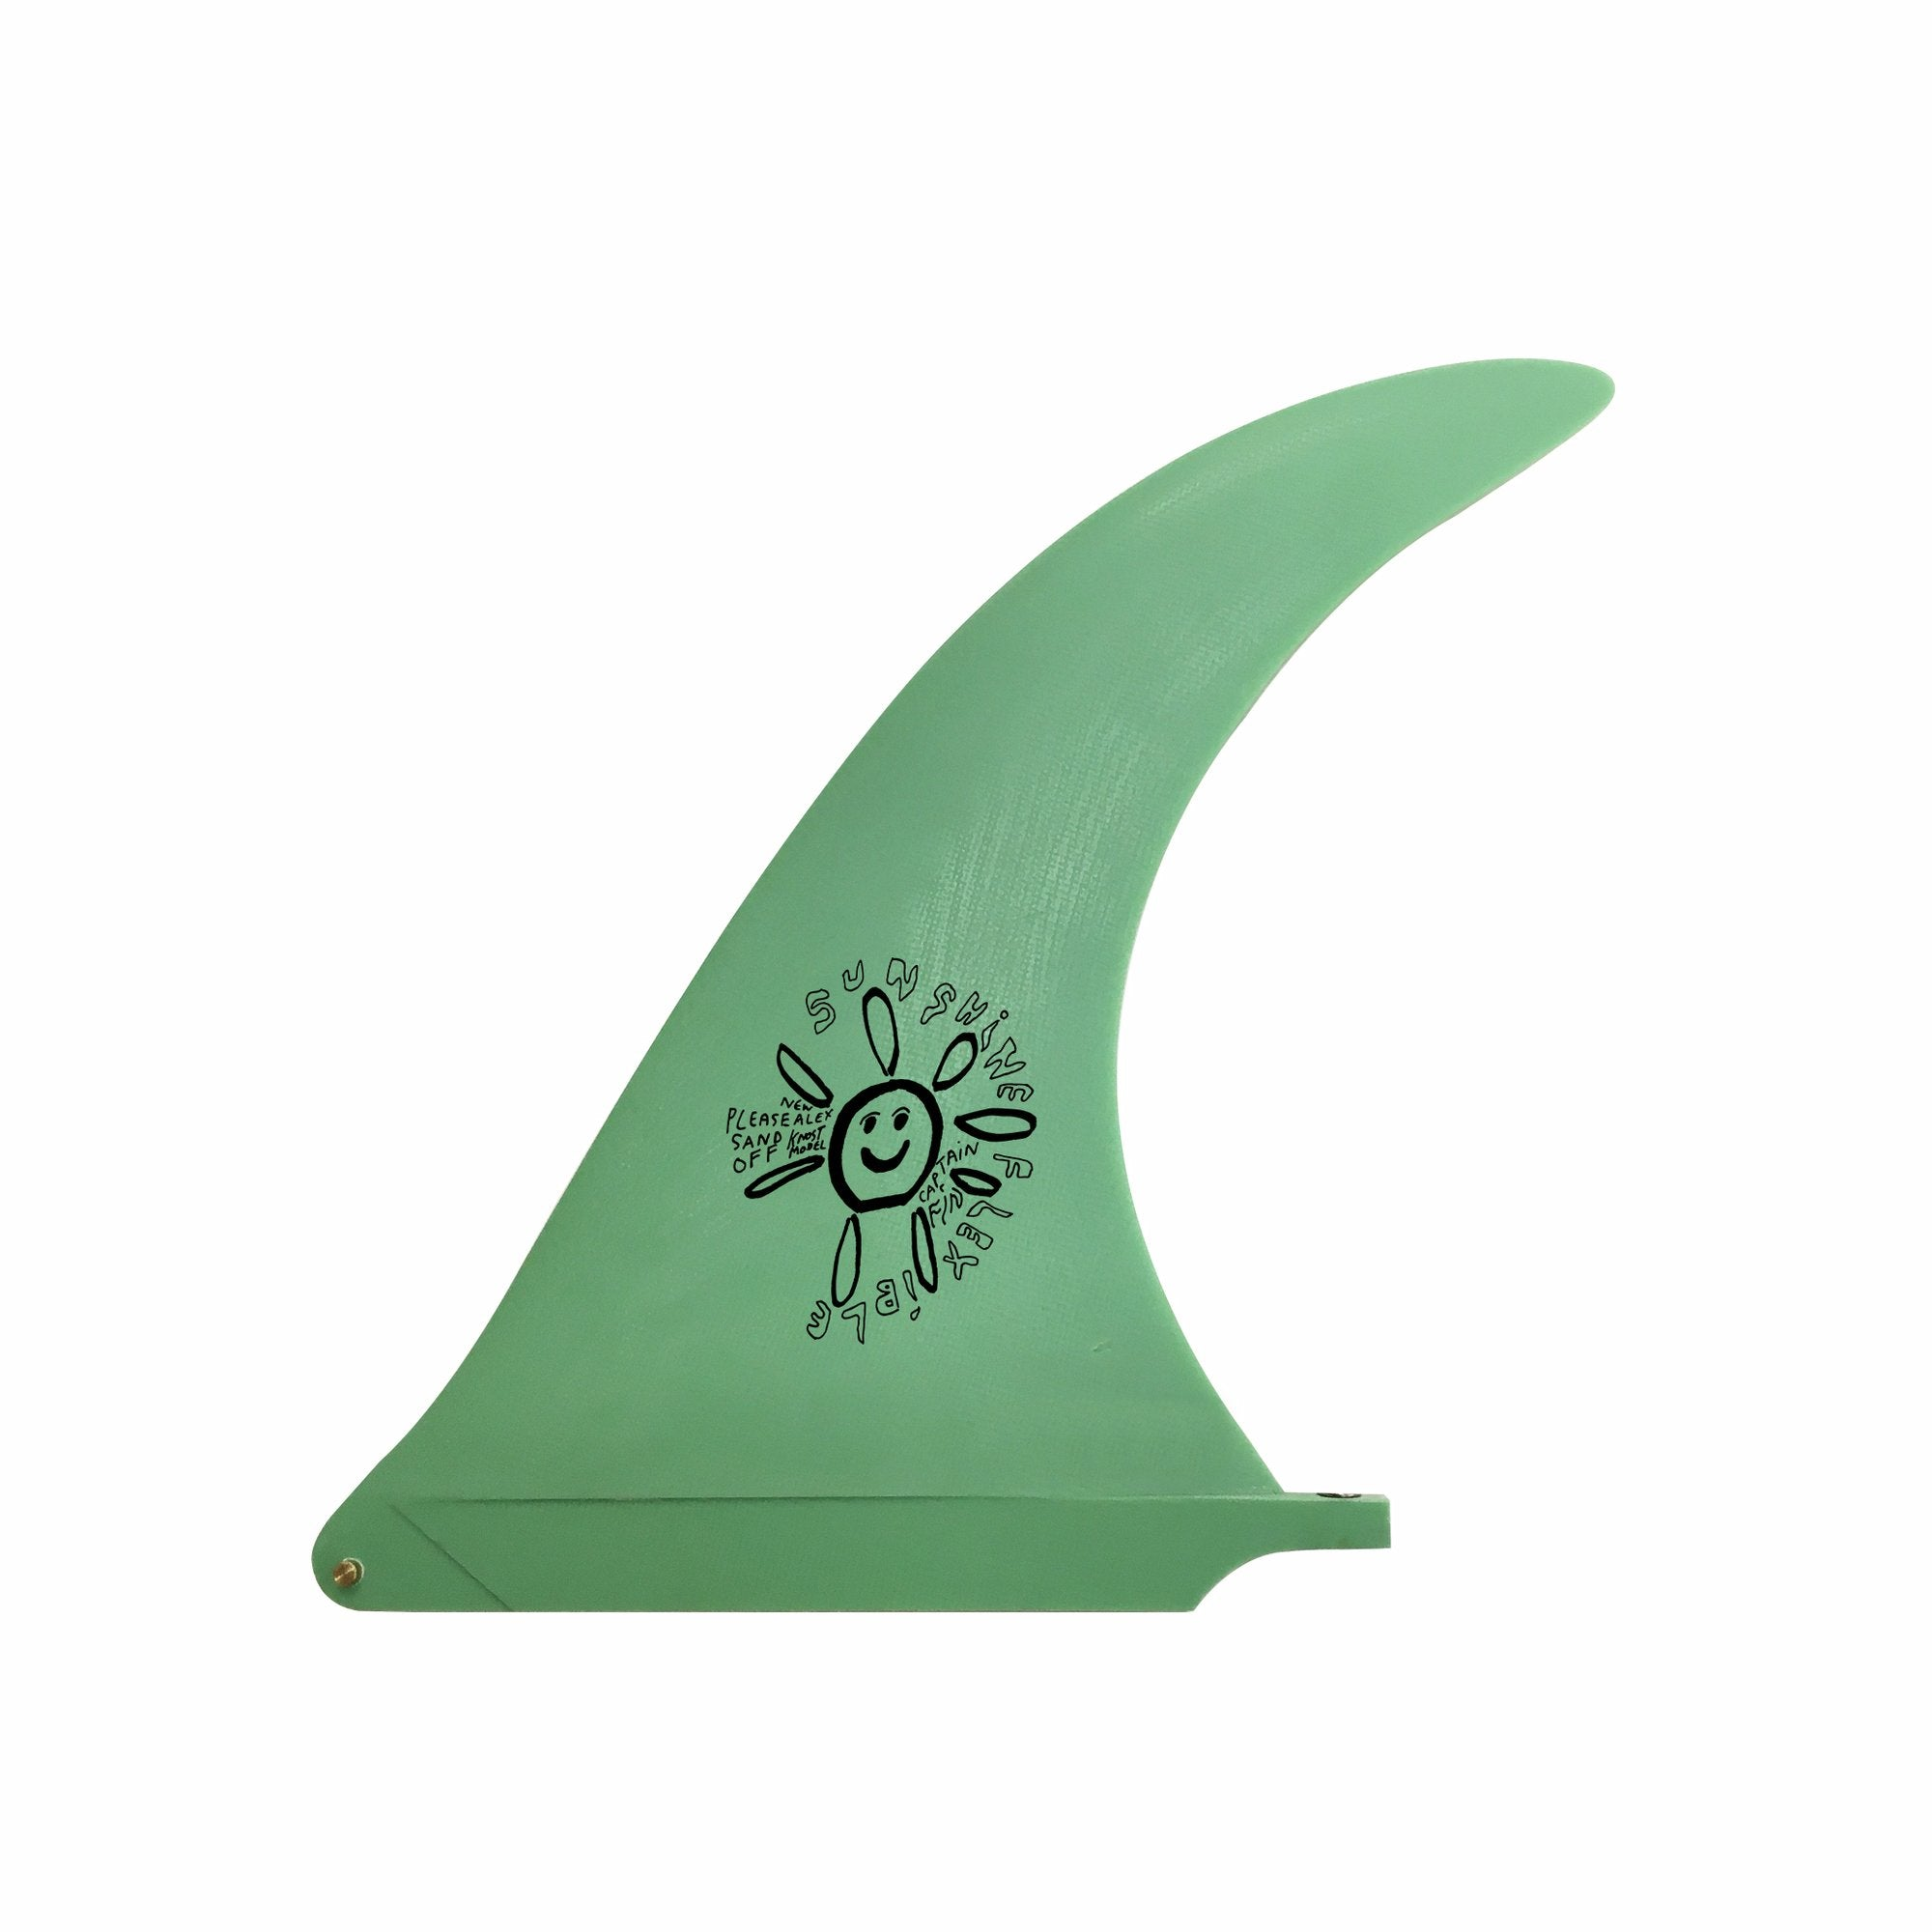 "Captain Fin Alex Knost 10"" Sunshine Fin - Green"